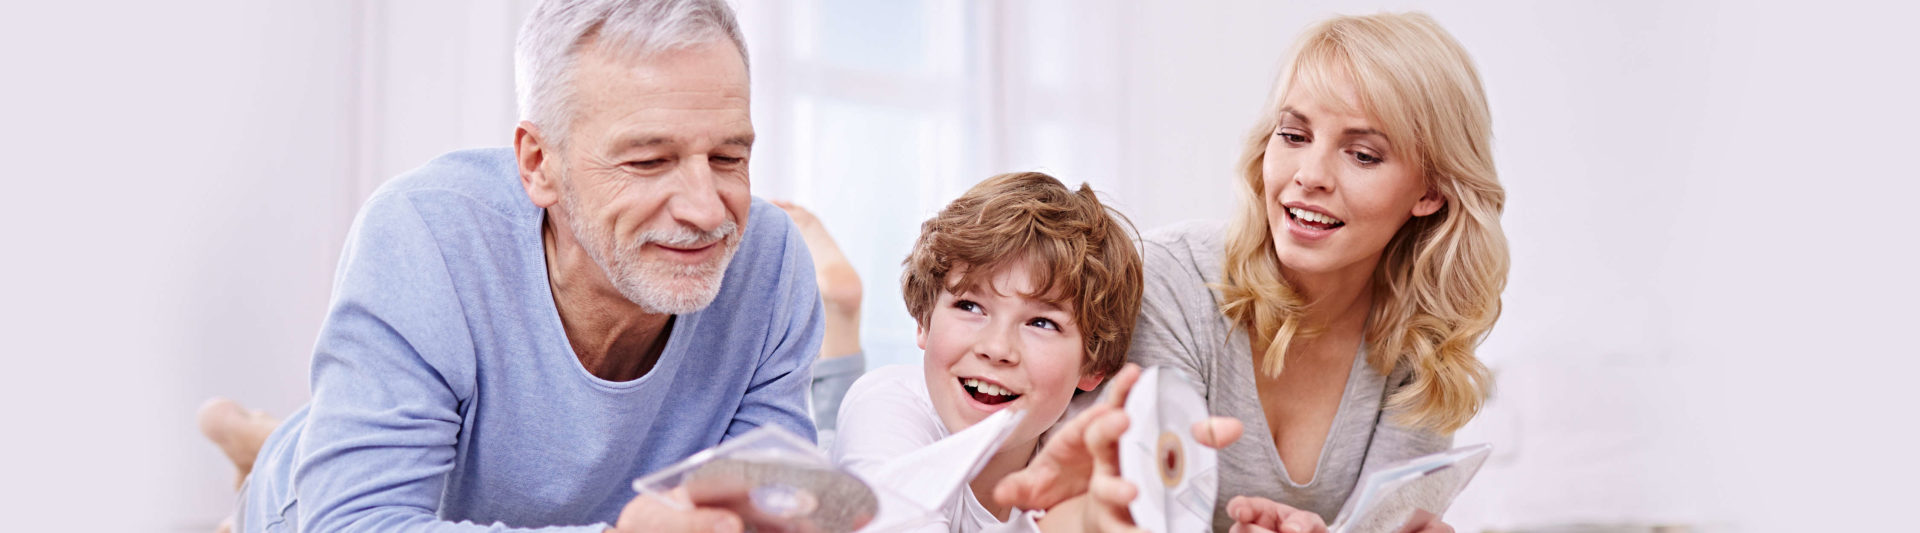 Grandfather, daughter and grandchild lie on the floor, hold CDs in their hands and listen to music.